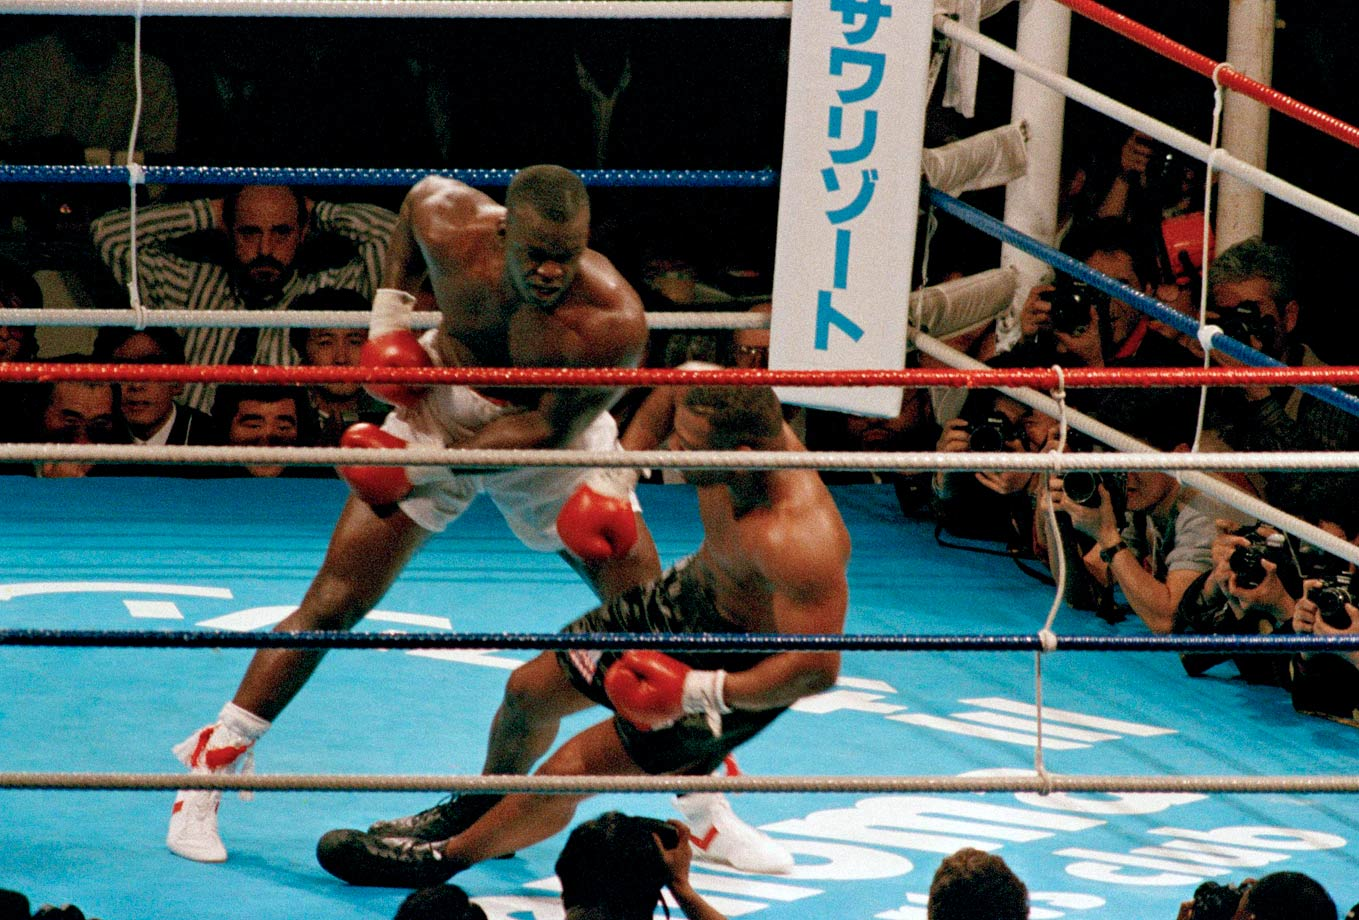 After rocking Tyson badly in the previous round, Douglas unleashed a thunderous combination in the 10th that drove the champion to the canvas, shocking fans in the Tokyo Dome and boxing fans around the world.